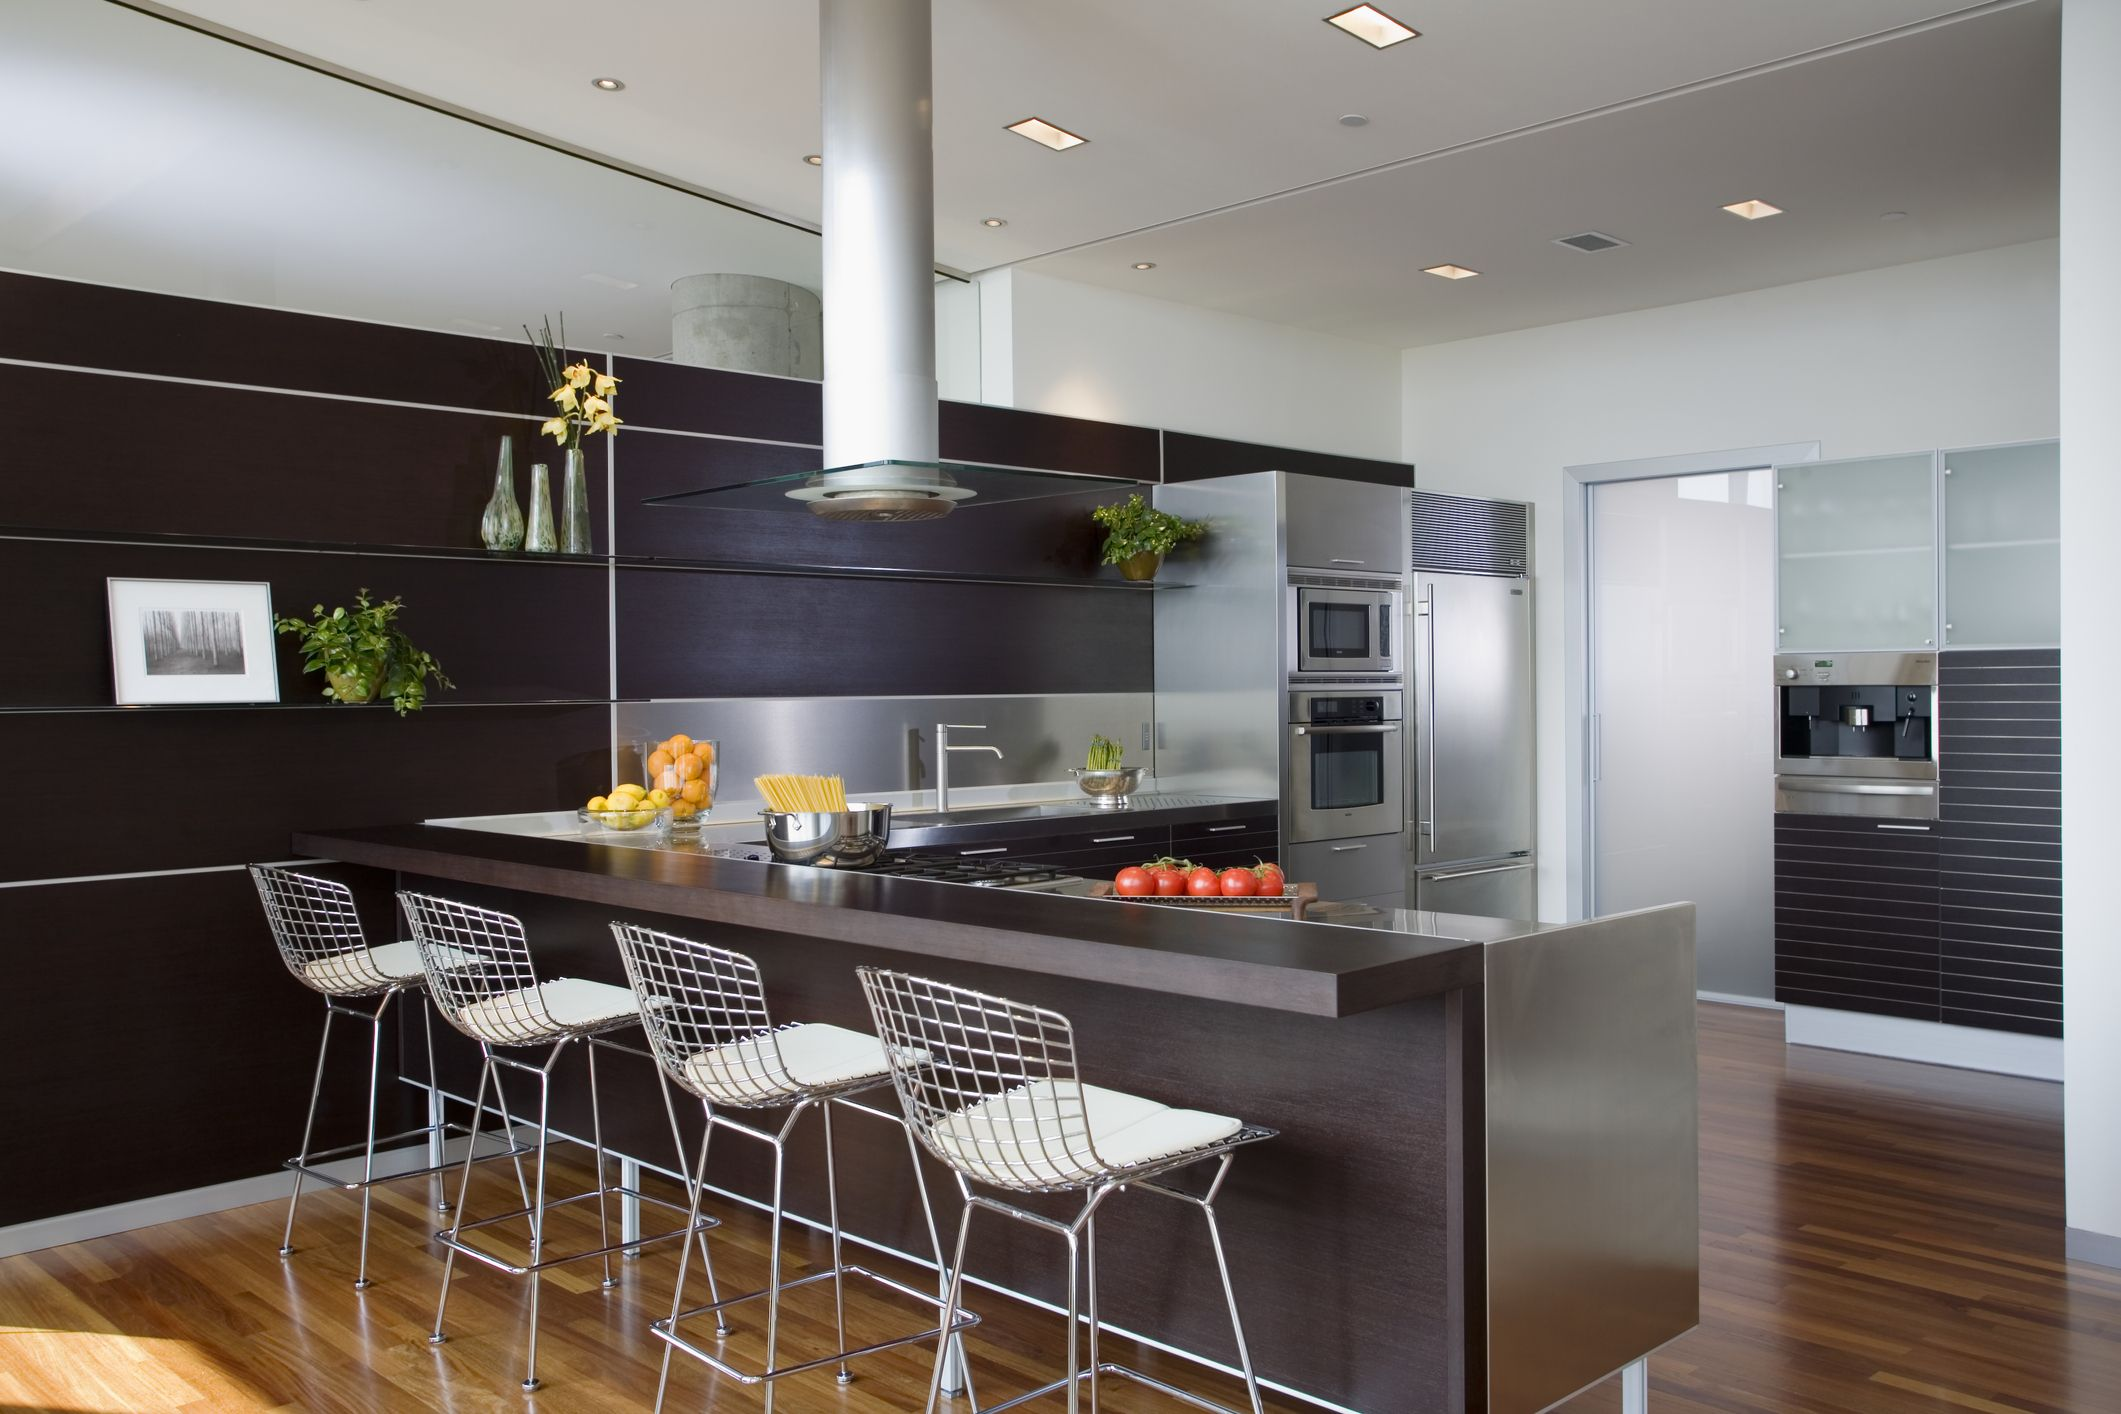 11 Common Kitchen Mistakes To Avoid 2021 - Tips For Designing A Kitchen